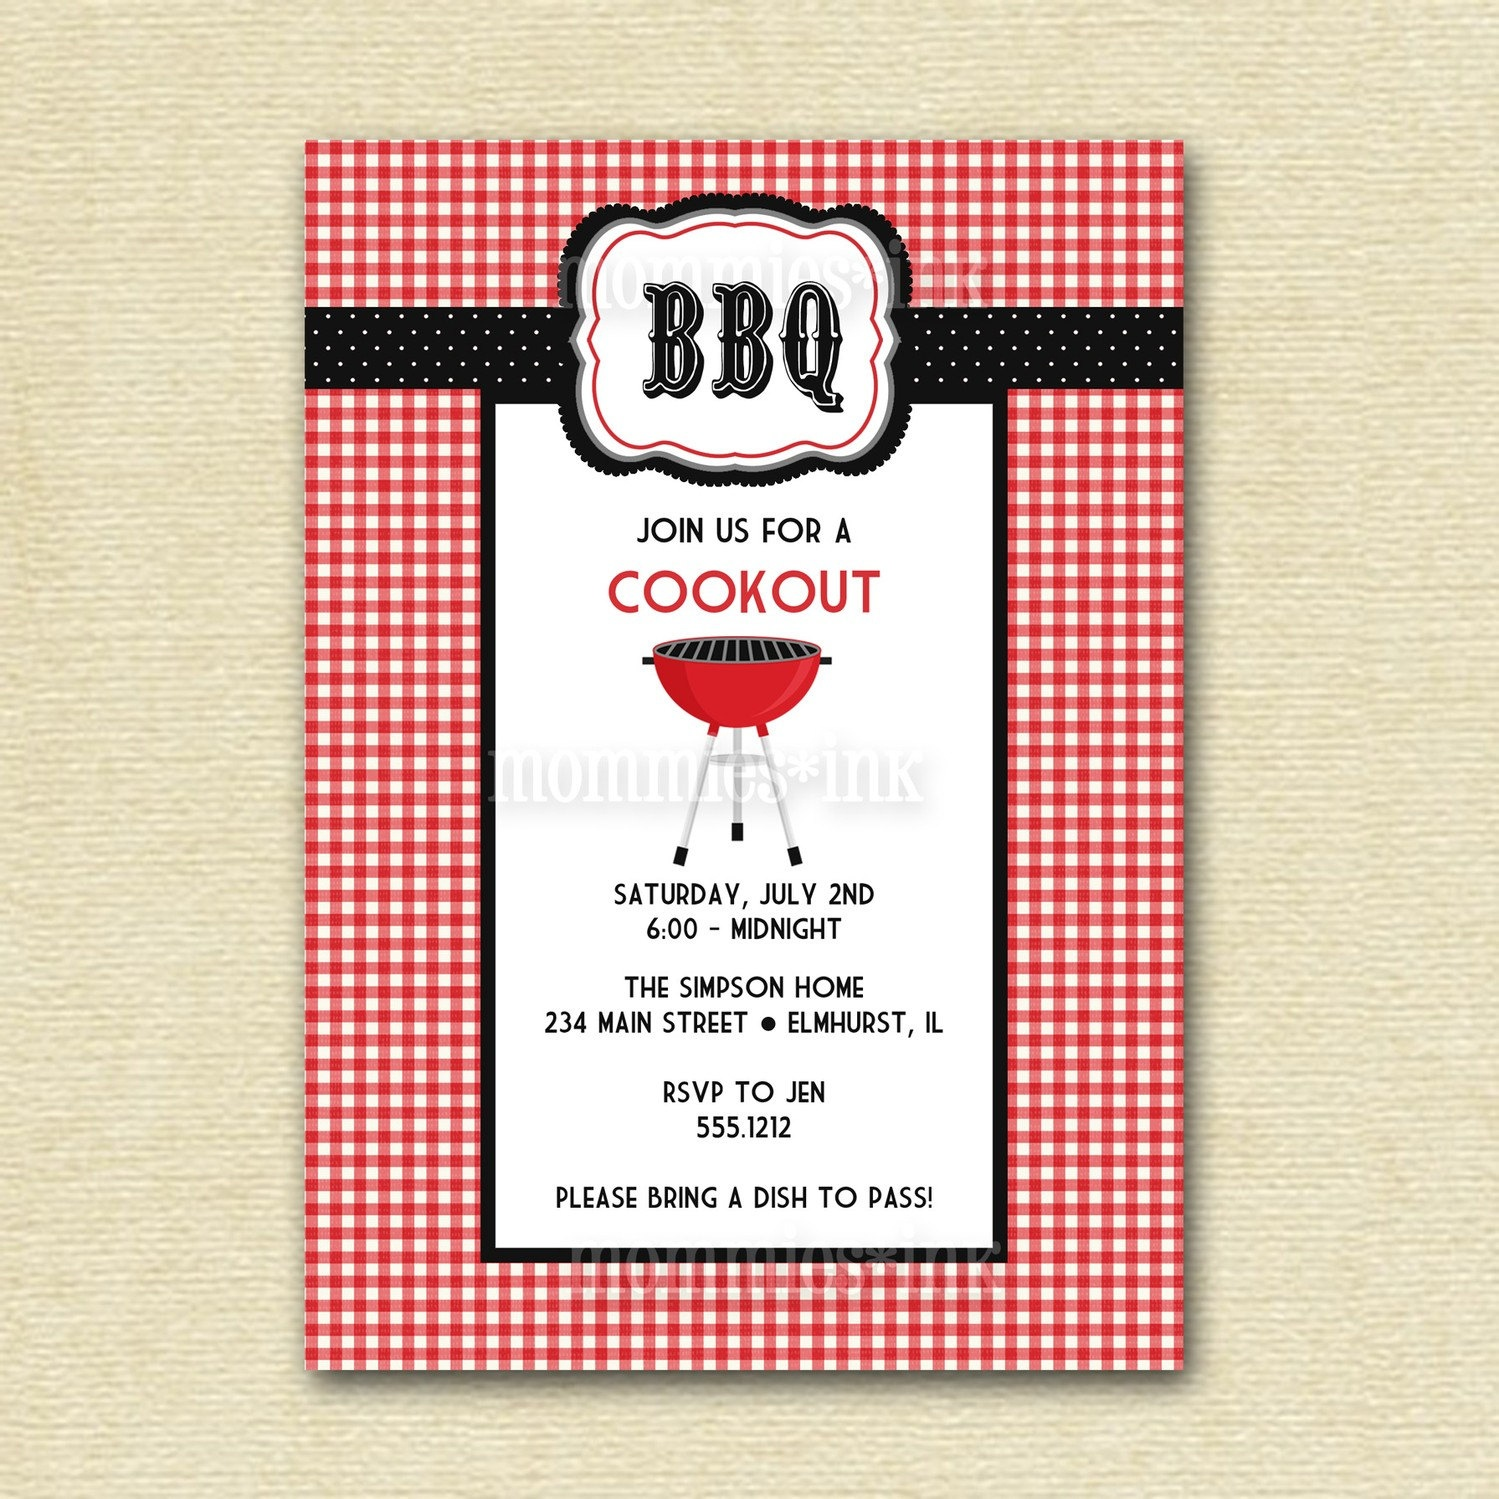 Free Bbq Invitation Templates - Free Printable Cookout Invitations